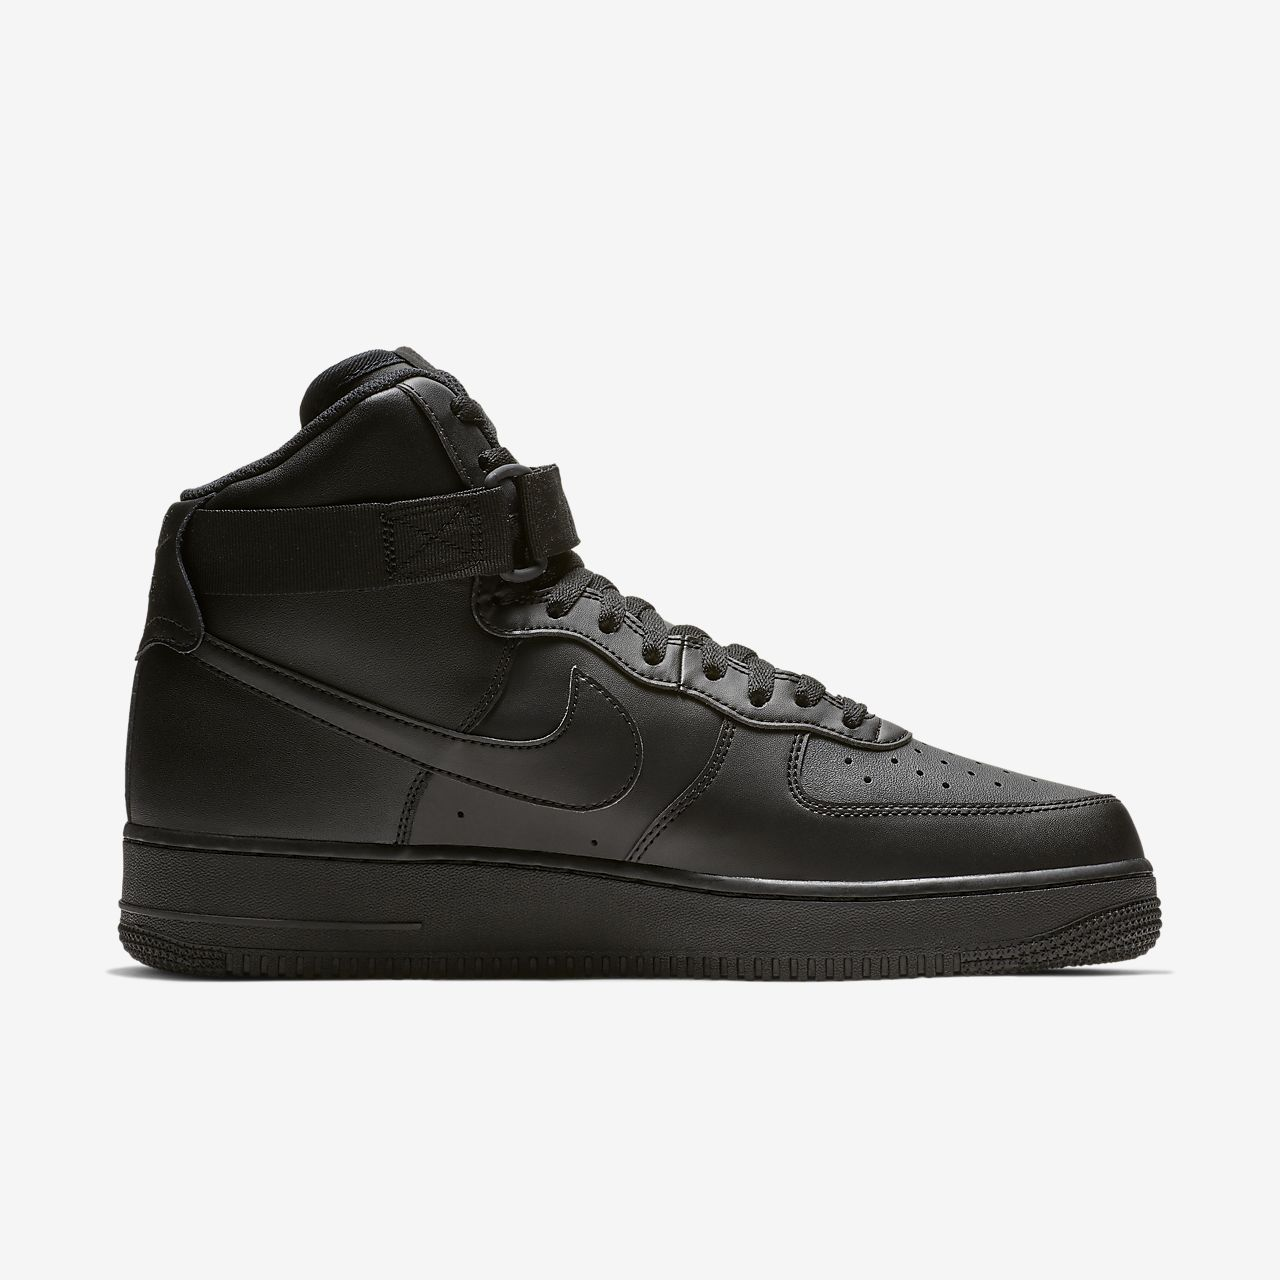 Air Force 1 Alto 07 venta 2015 envío libre exclusiva 2NX7ZO6